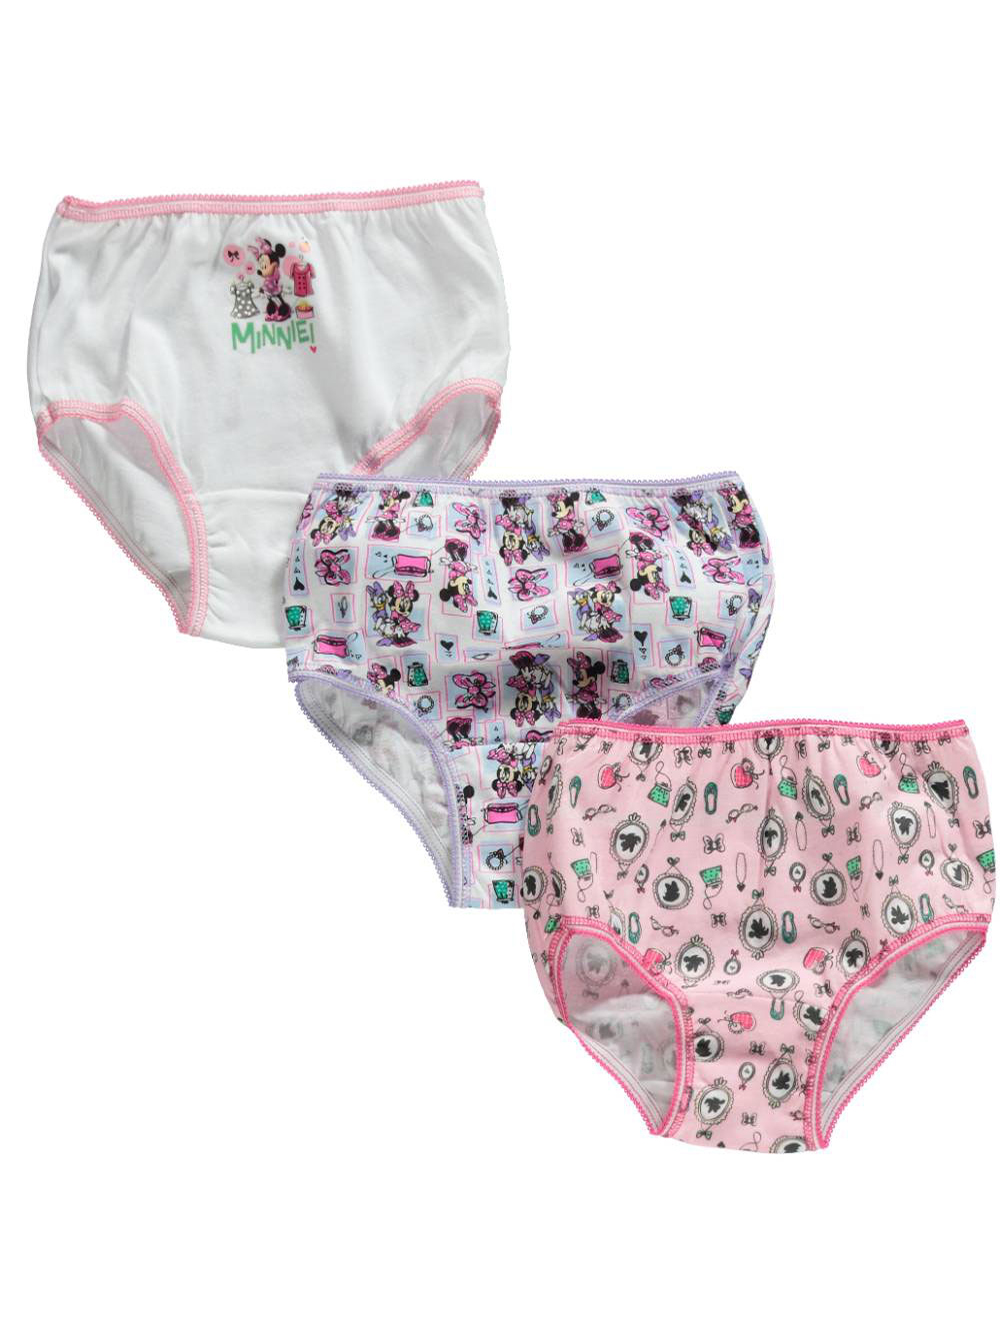 Minnie Mouse 3-Pack Panties